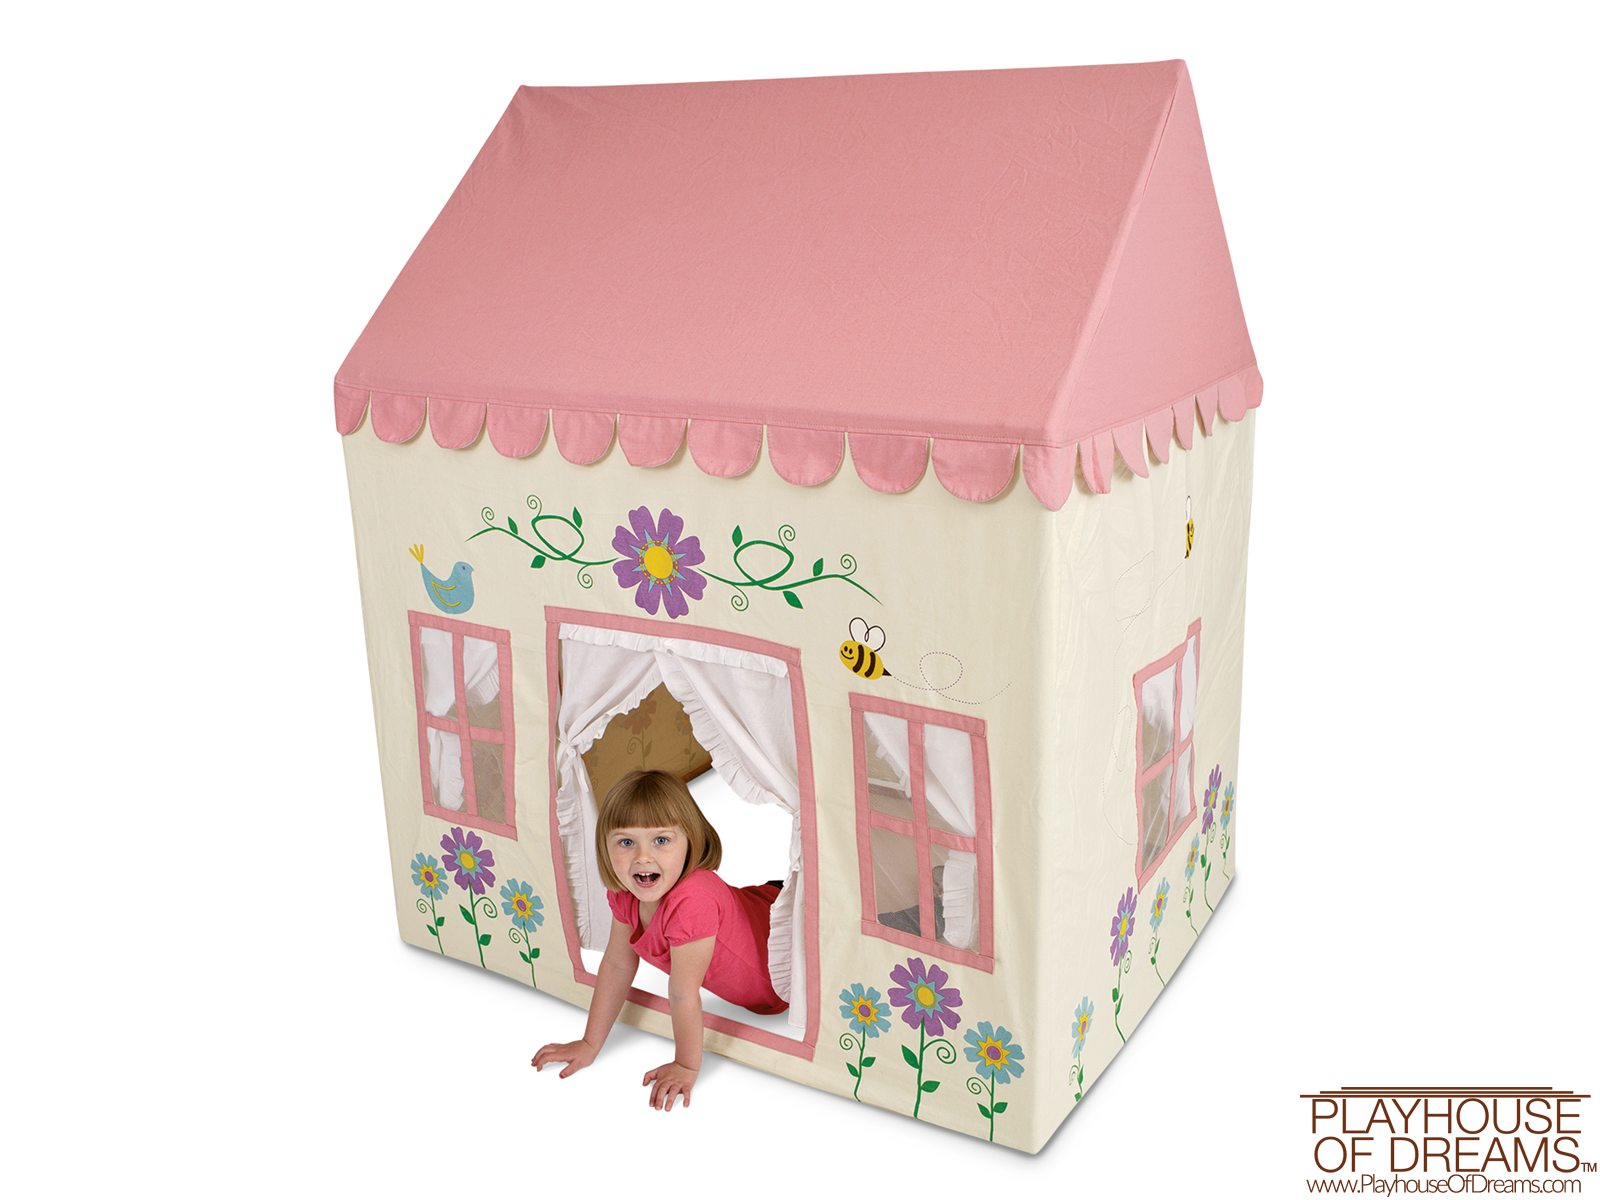 My Secret Garden Playhouse - Pacific Play Tent - Playhouse of Dreams - 1 ...  sc 1 st  Playhouse of Dreams & My Secret Garden Playhouse - Buy Online - Pacific Play Tent ...